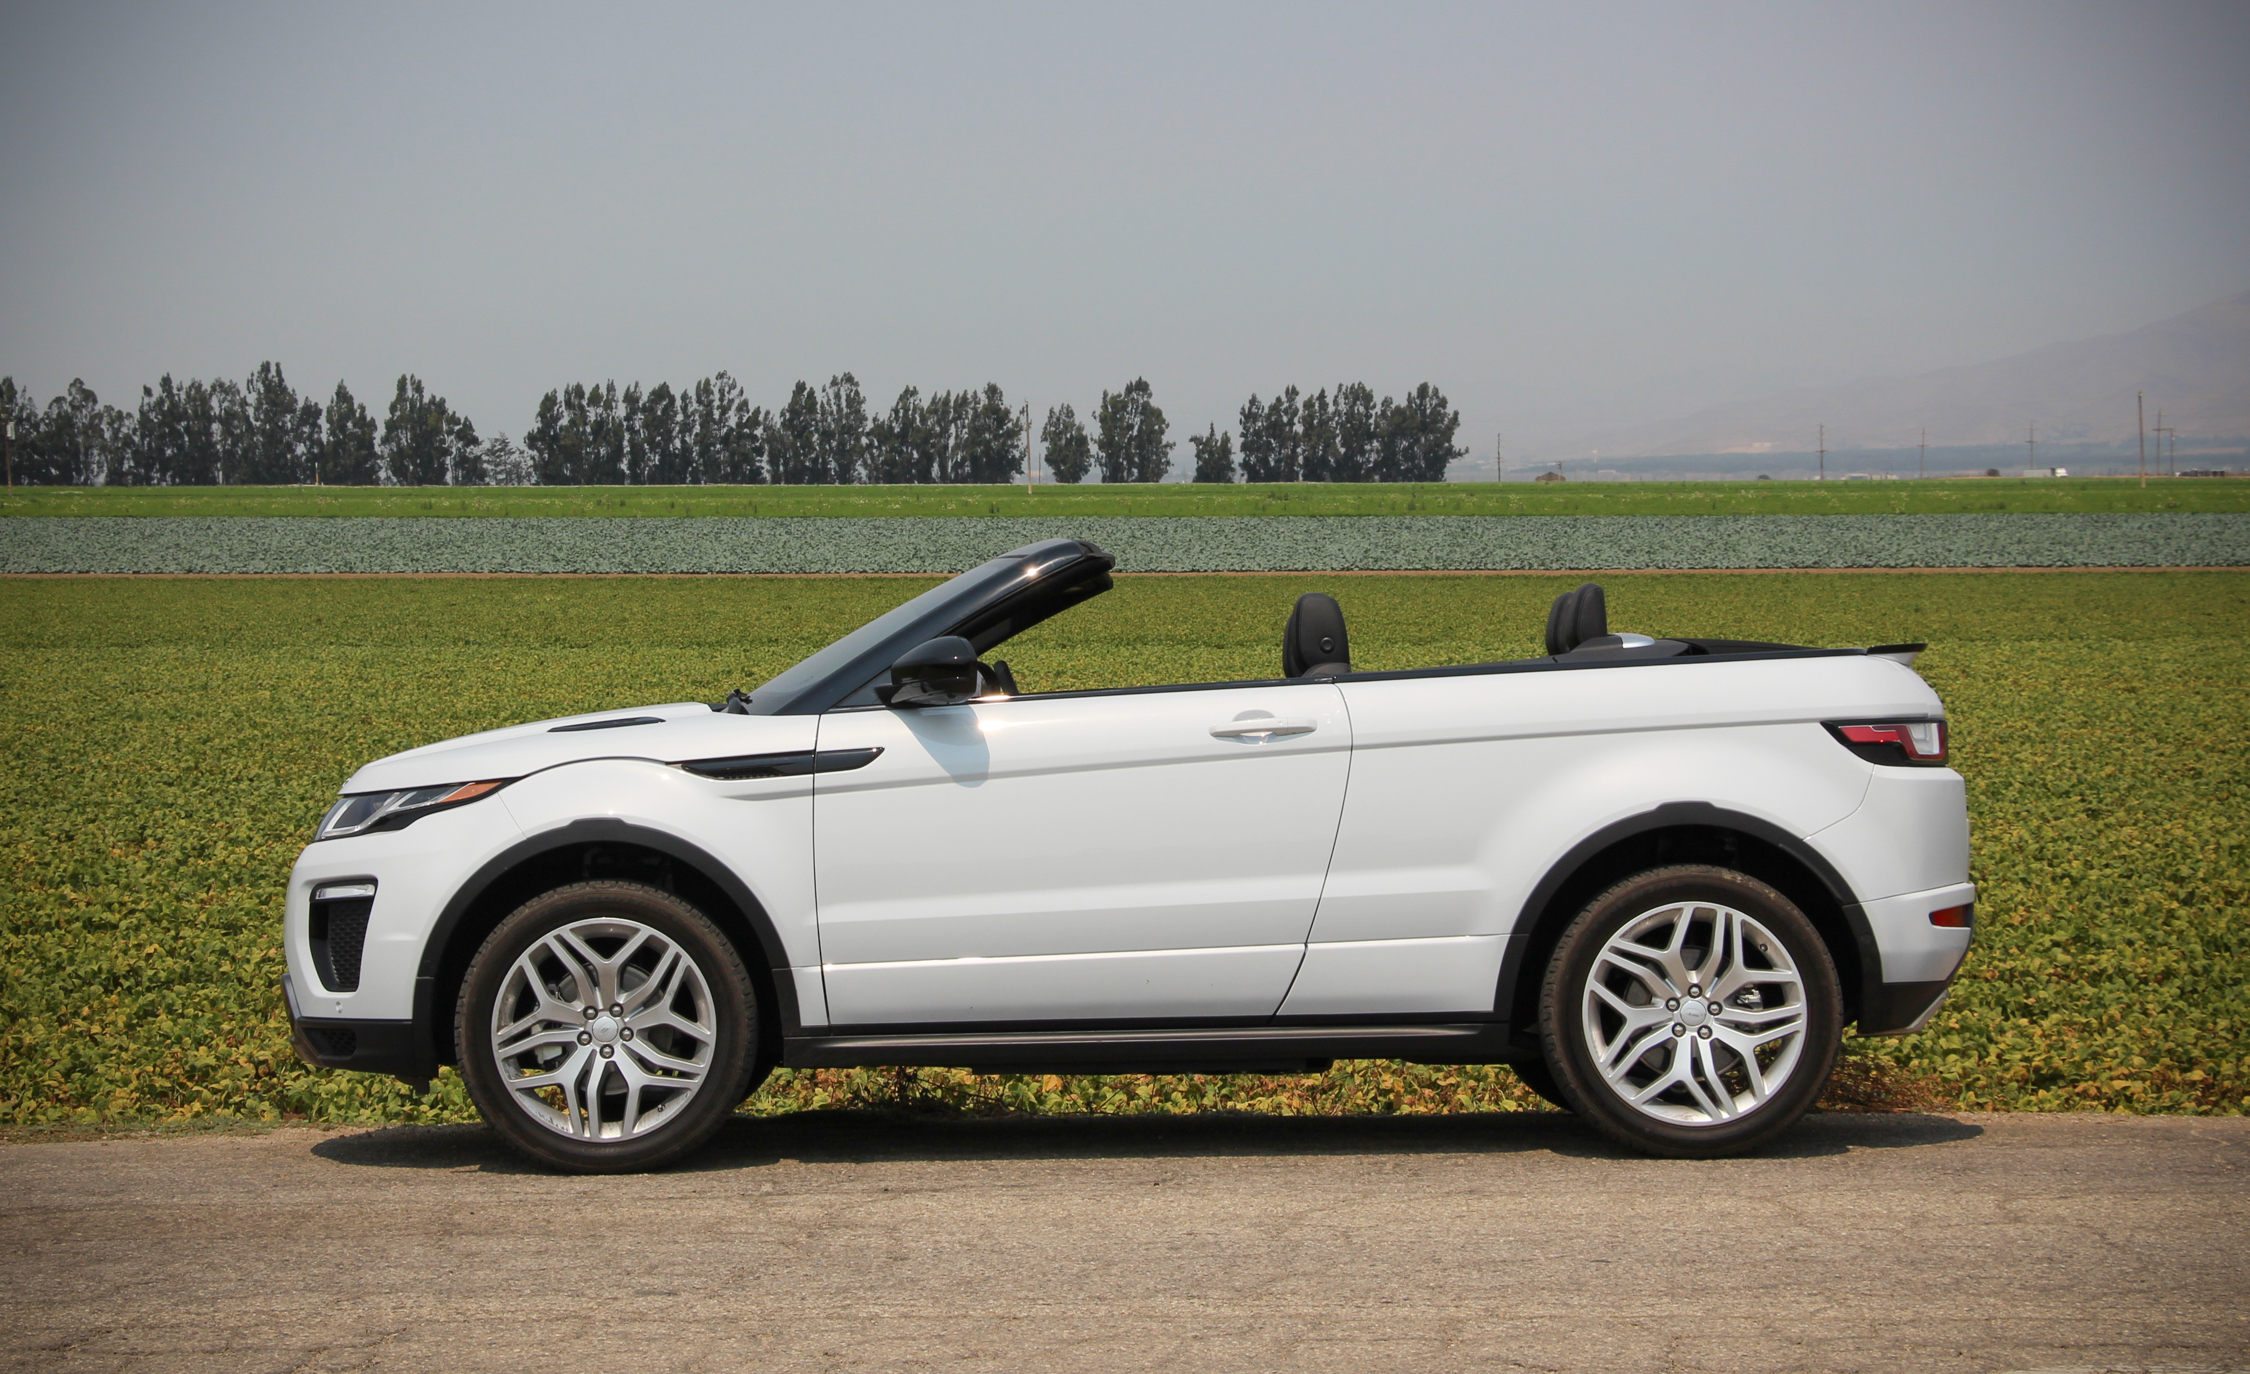 2017 Land Rover Range Rover Evoque Convertible Exterior Open Roof Side (Photo 9 of 14)